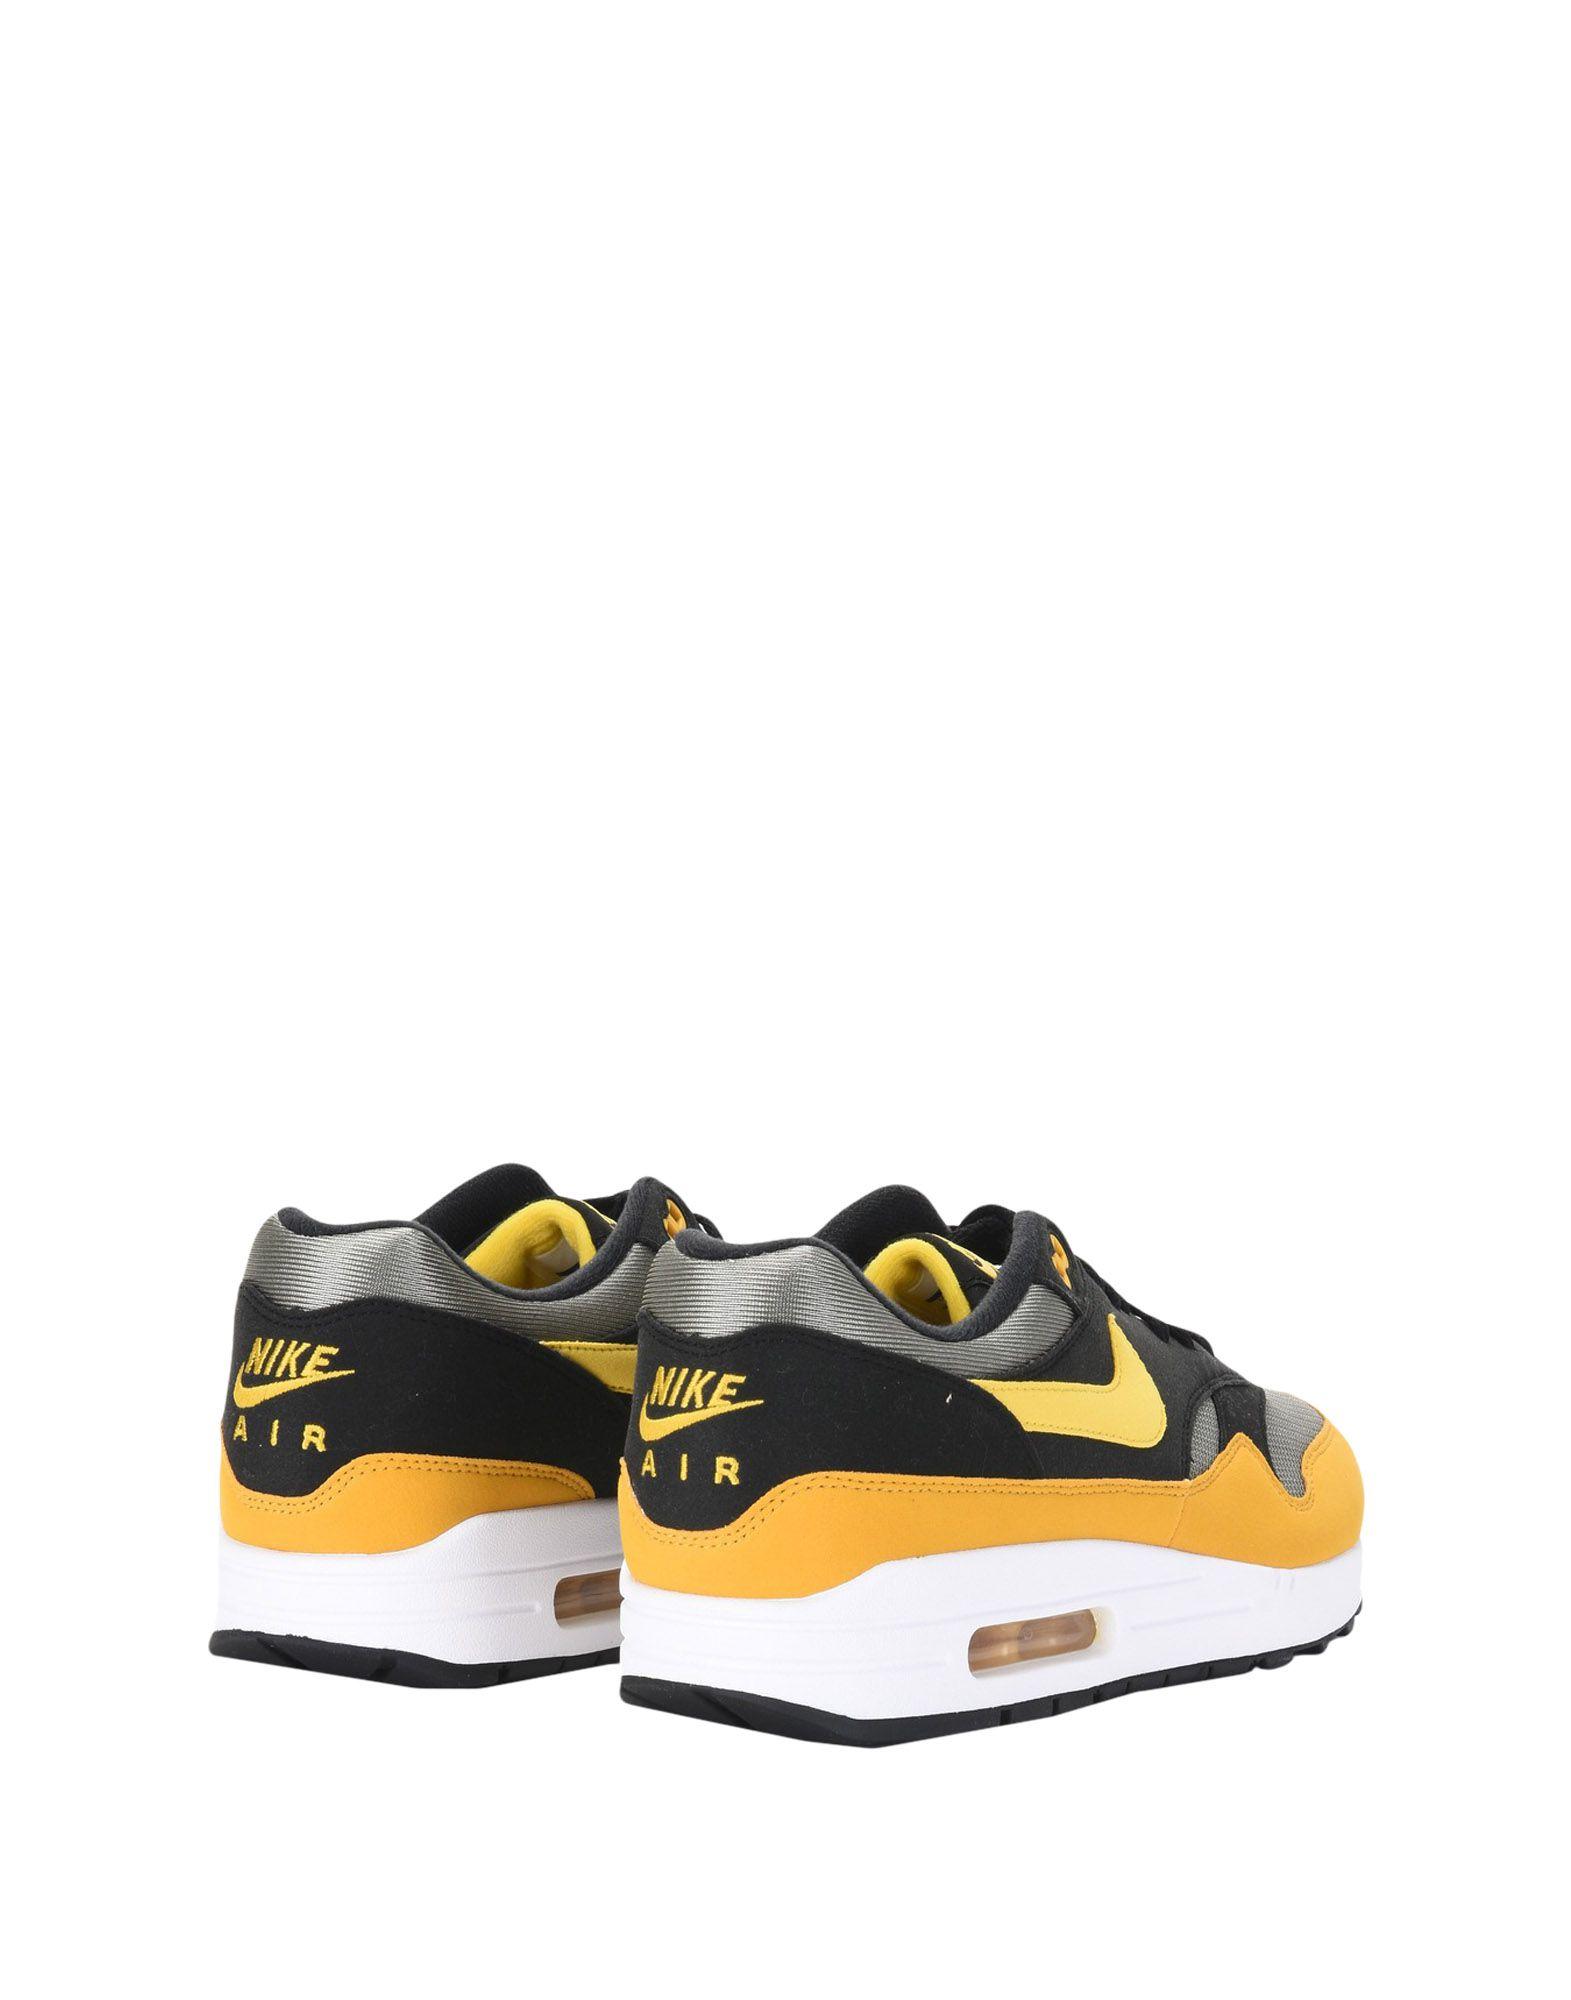 Nike    Air Max 1 - Sneakers - Men Nike Sneakers online on  United Kingdom - 11440920PC 1d807e